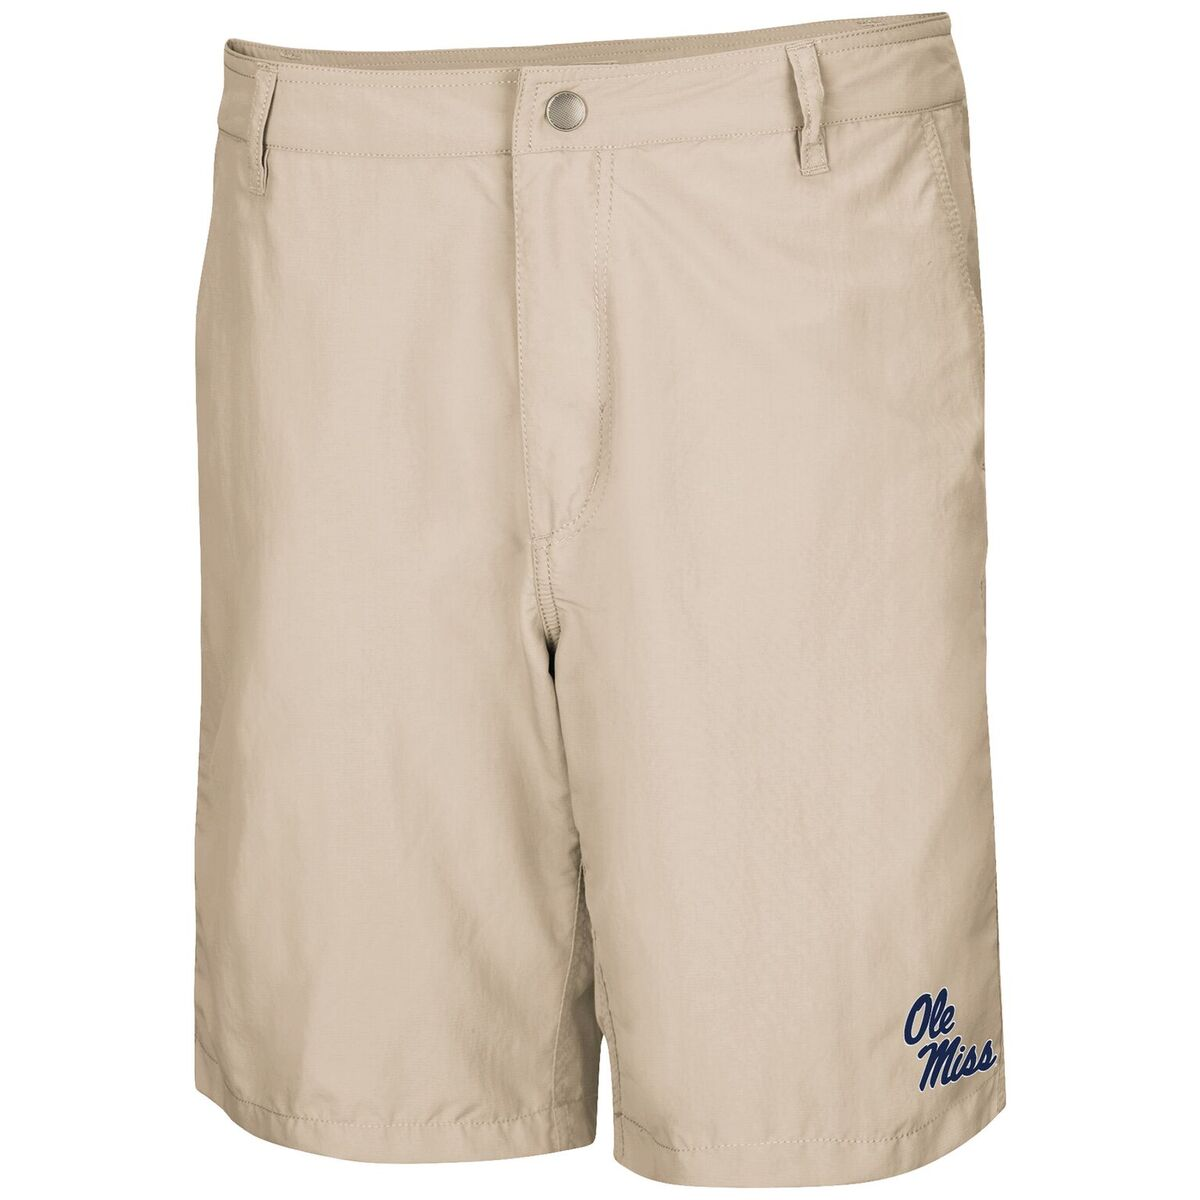 Chiliwear Pitch Short